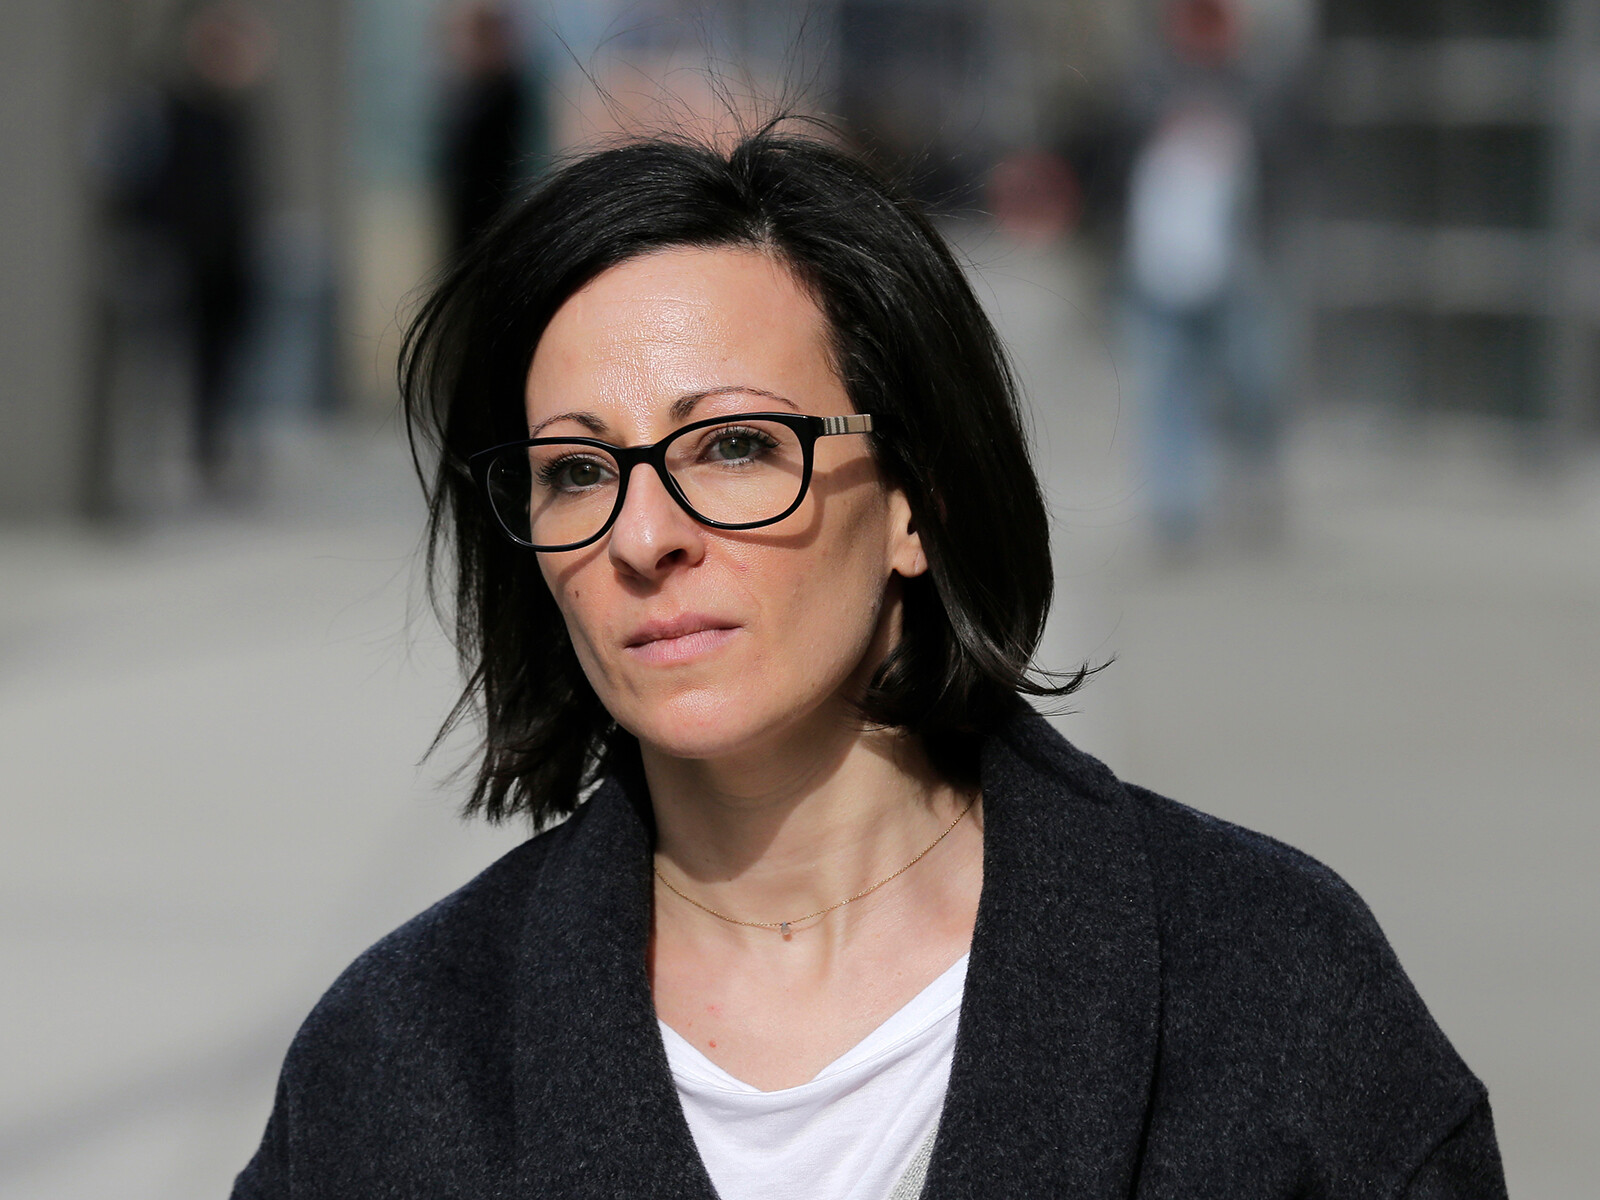 Former high-ranking Nxivm member who testified against Keith Raniere will not go to prison